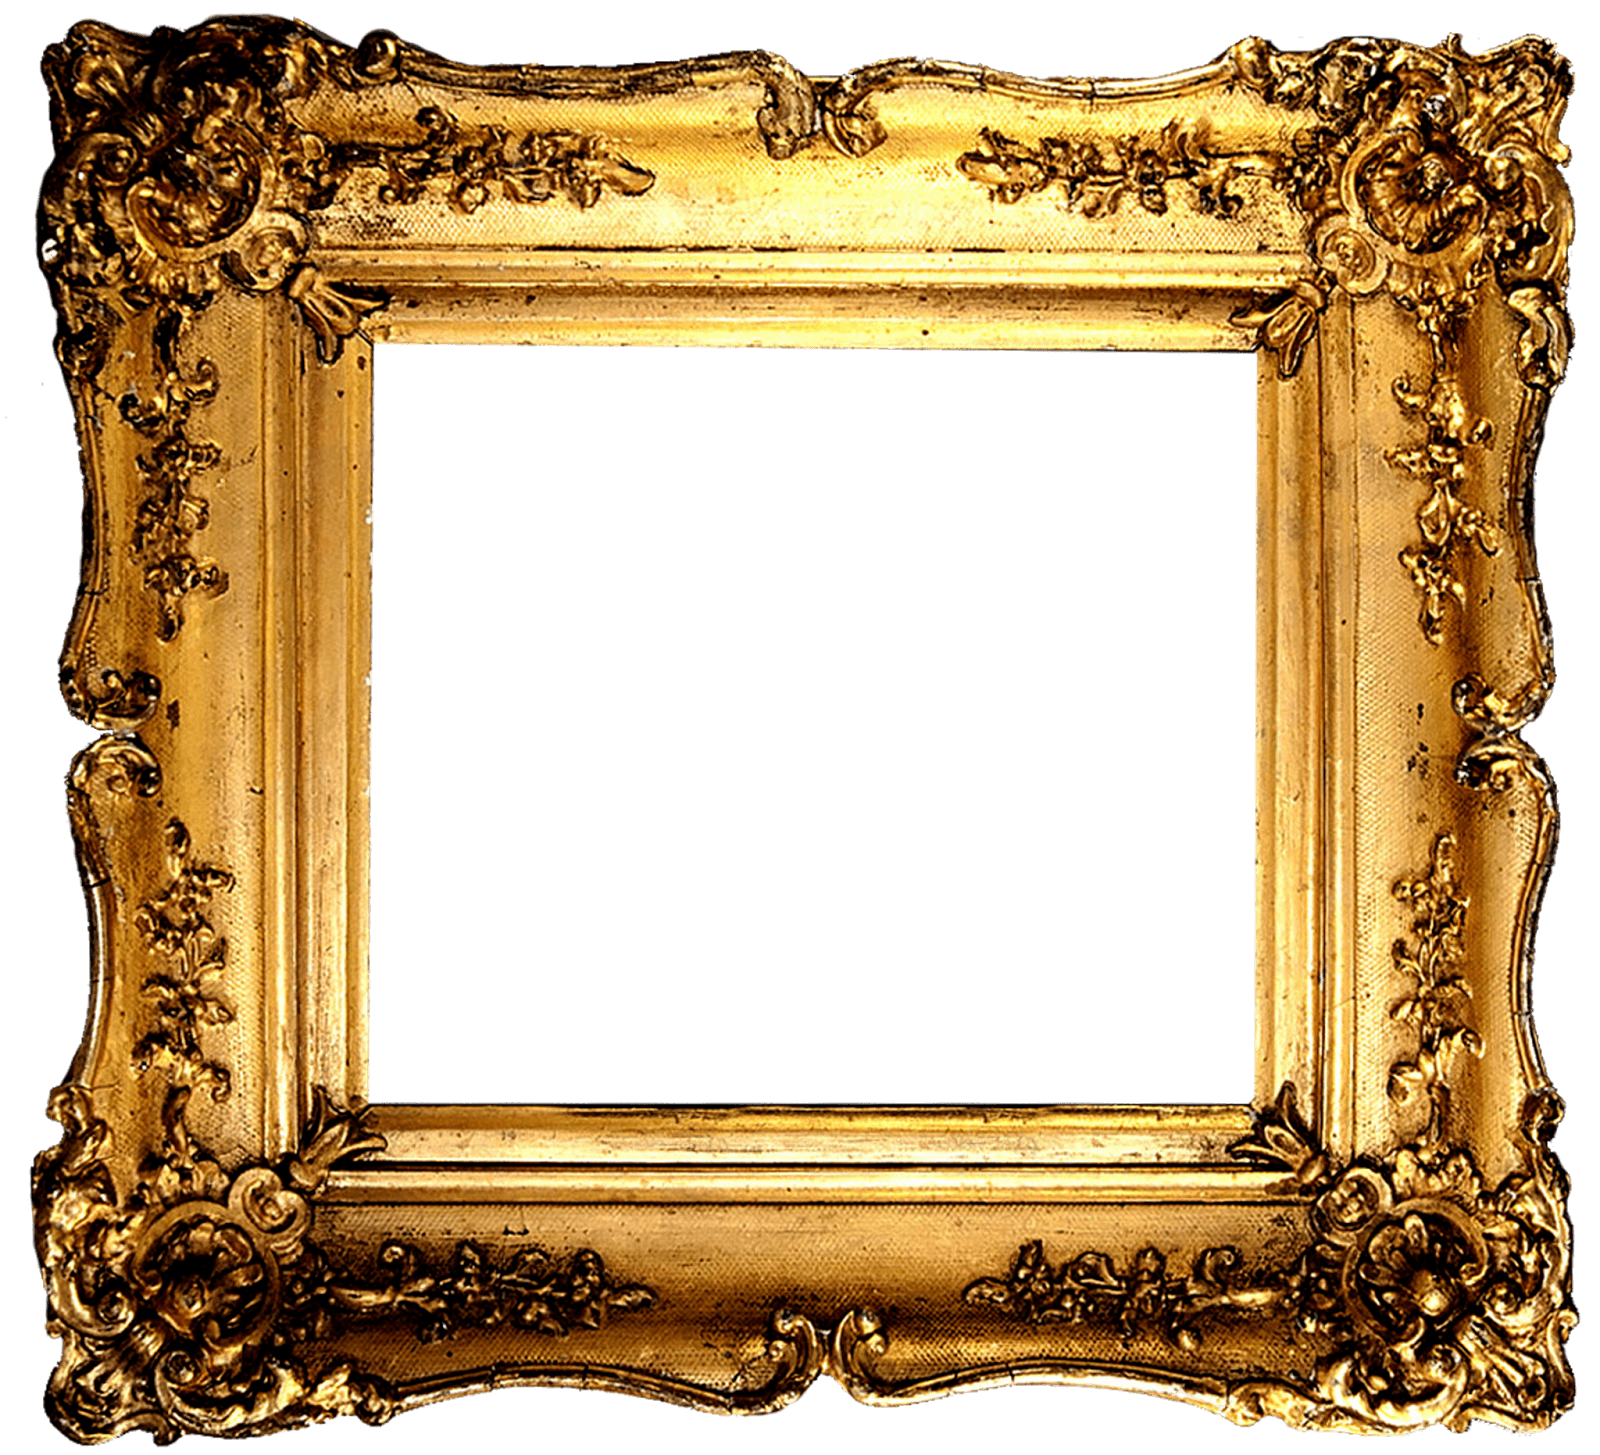 PNG Frames For Pictures - 66664